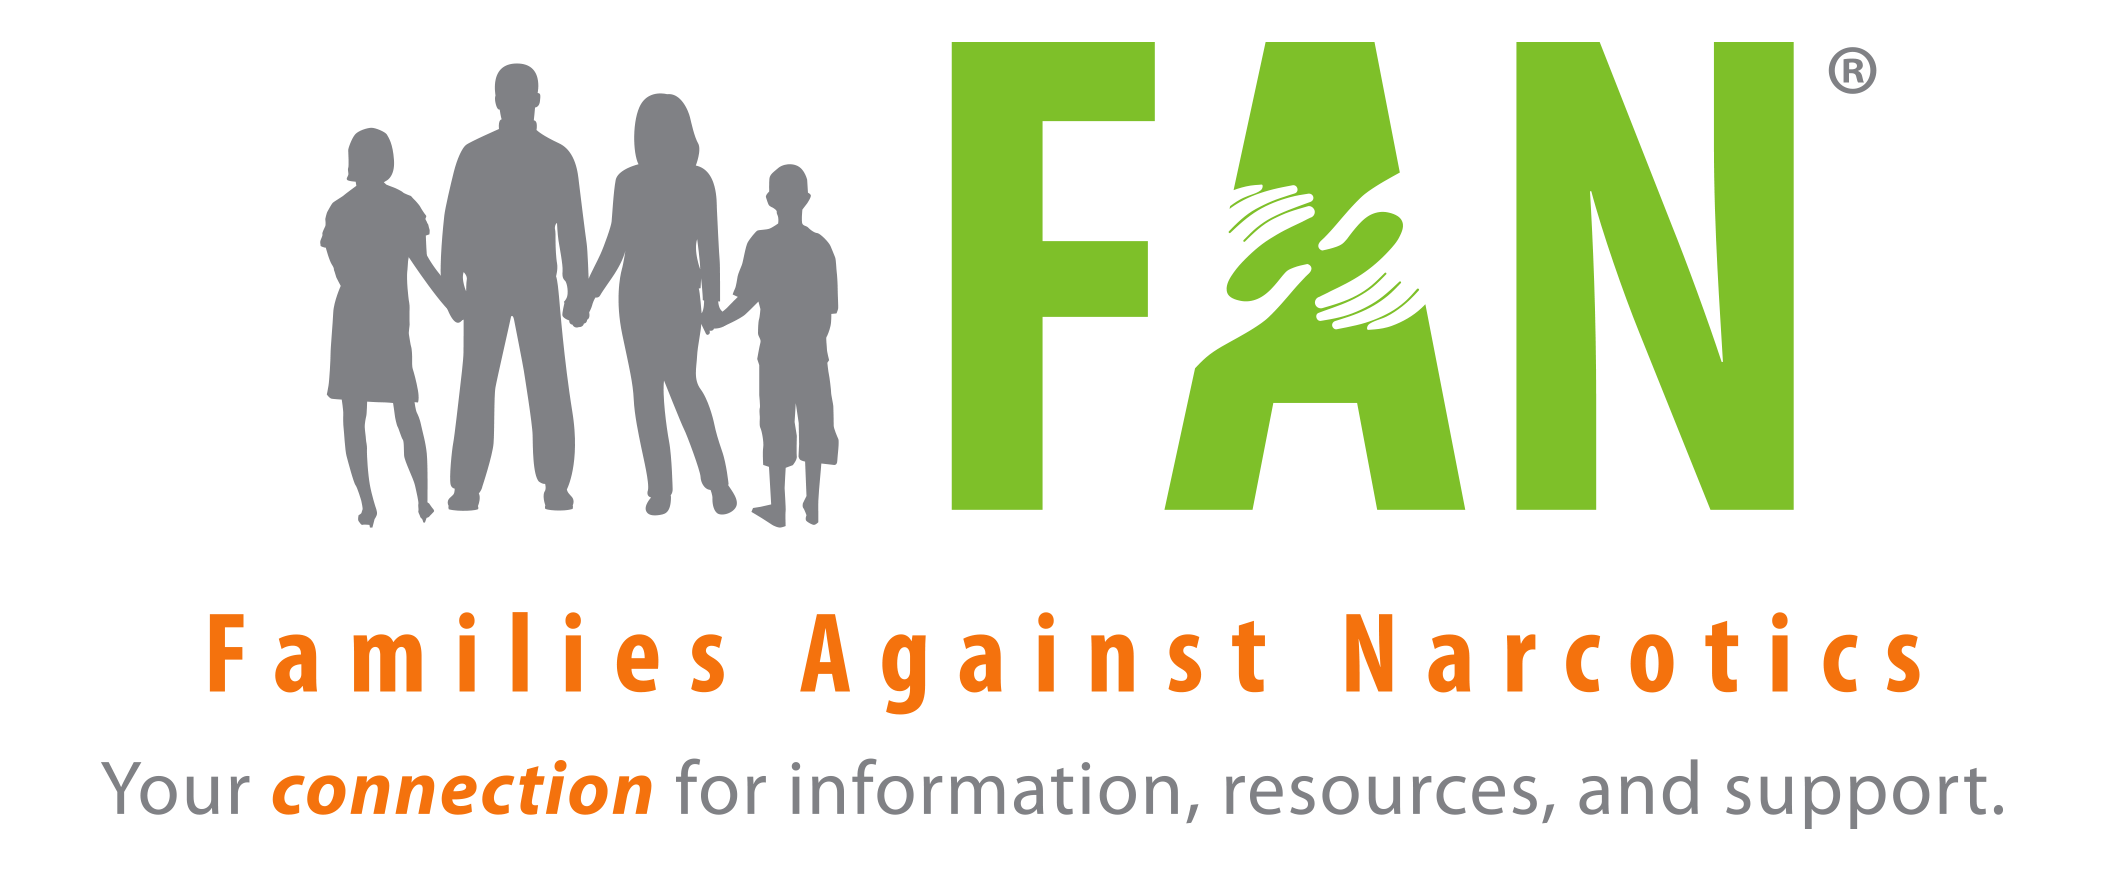 Families Against Narcotics